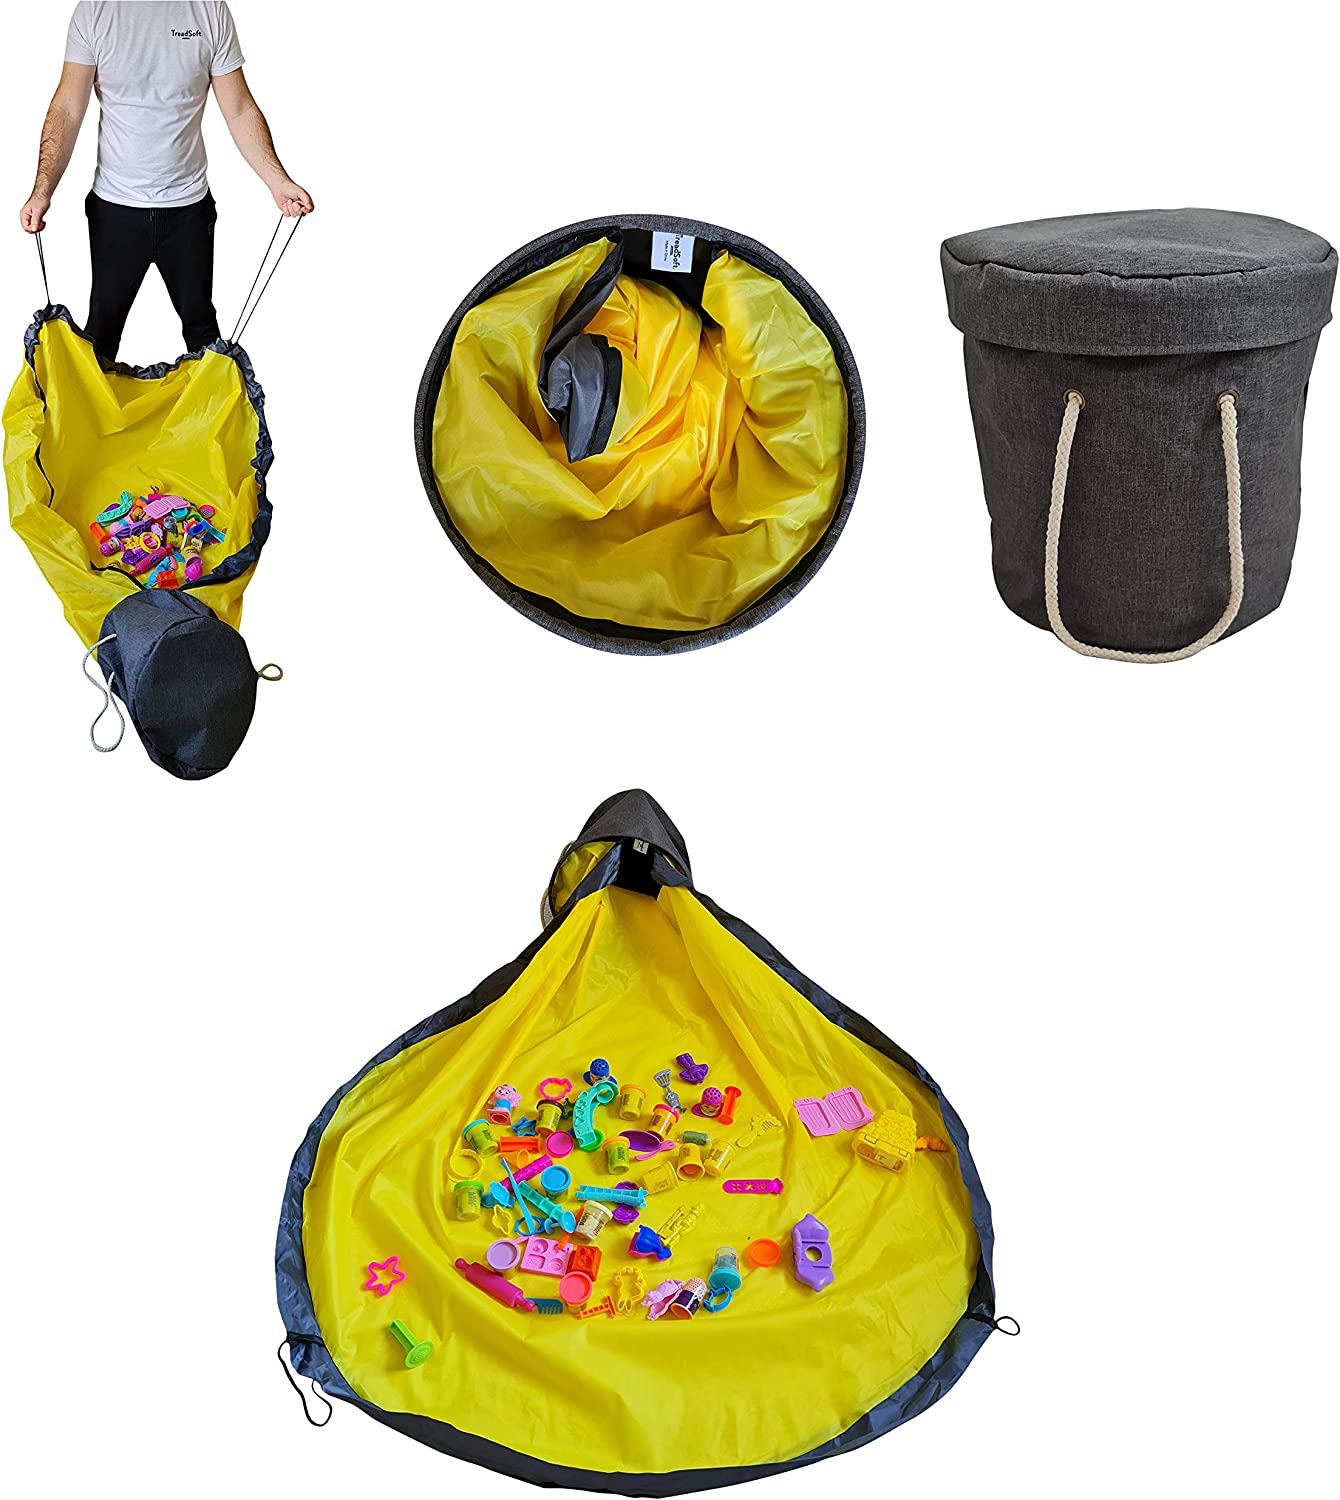 2-in-1 Toy Storage Organizer Baskets and Play Mat,Portable Kids Toy Storage Bag and Play Mat-12,6 Tall by 11,4 Diameter with 52 Play mat,Toys Storage Bag to Keep Lego Bricks contained